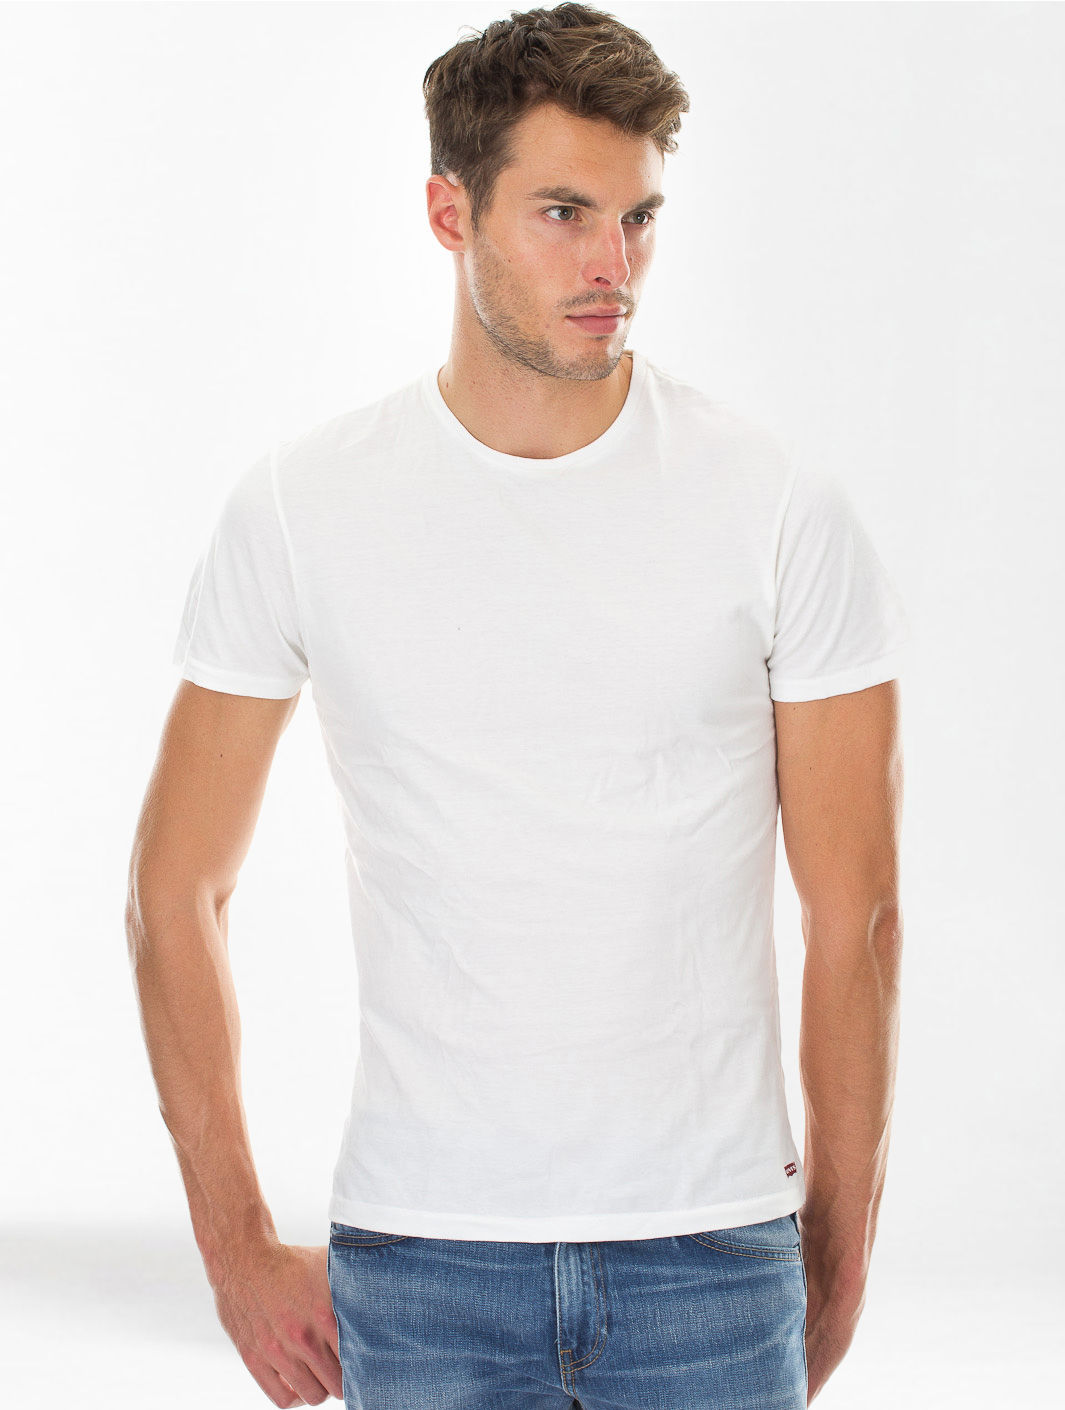 Men 39 s fashion 13 things that will never go out of style for Levis plain t shirts